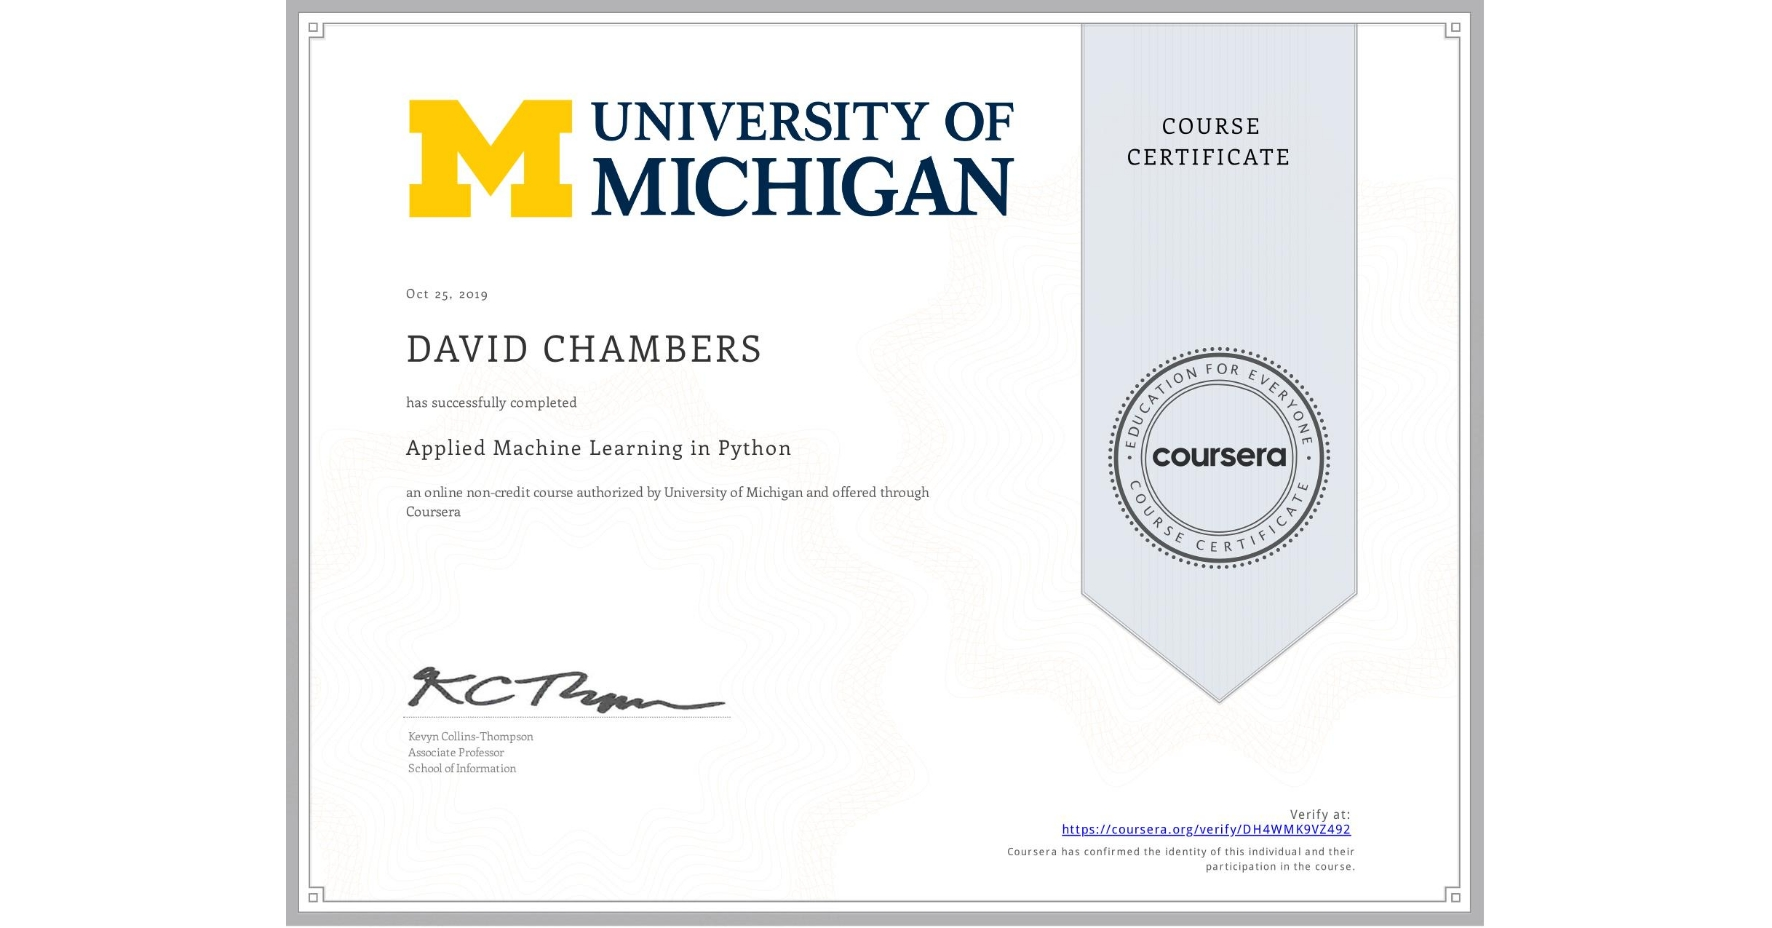 View certificate for DAVID CHAMBERS, Applied Machine Learning in Python, an online non-credit course authorized by University of Michigan and offered through Coursera